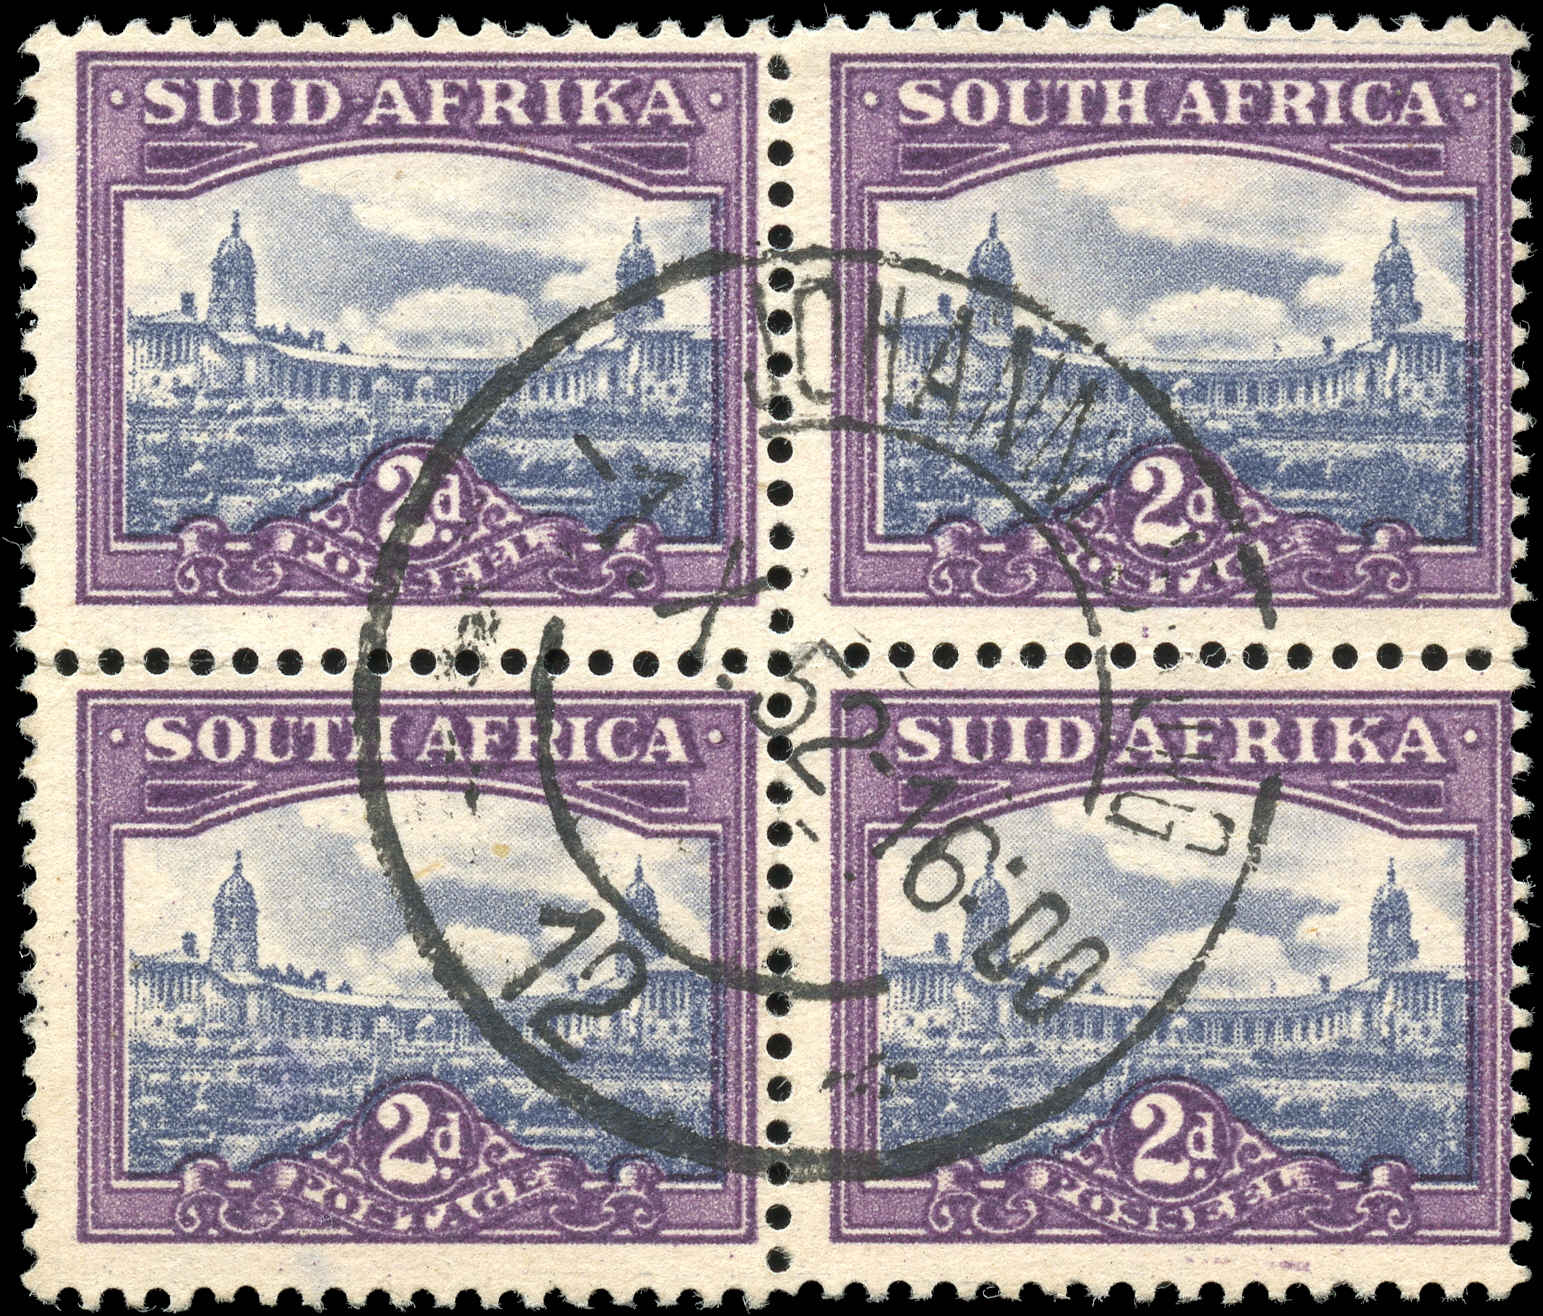 South Africa, ##56, F, Used